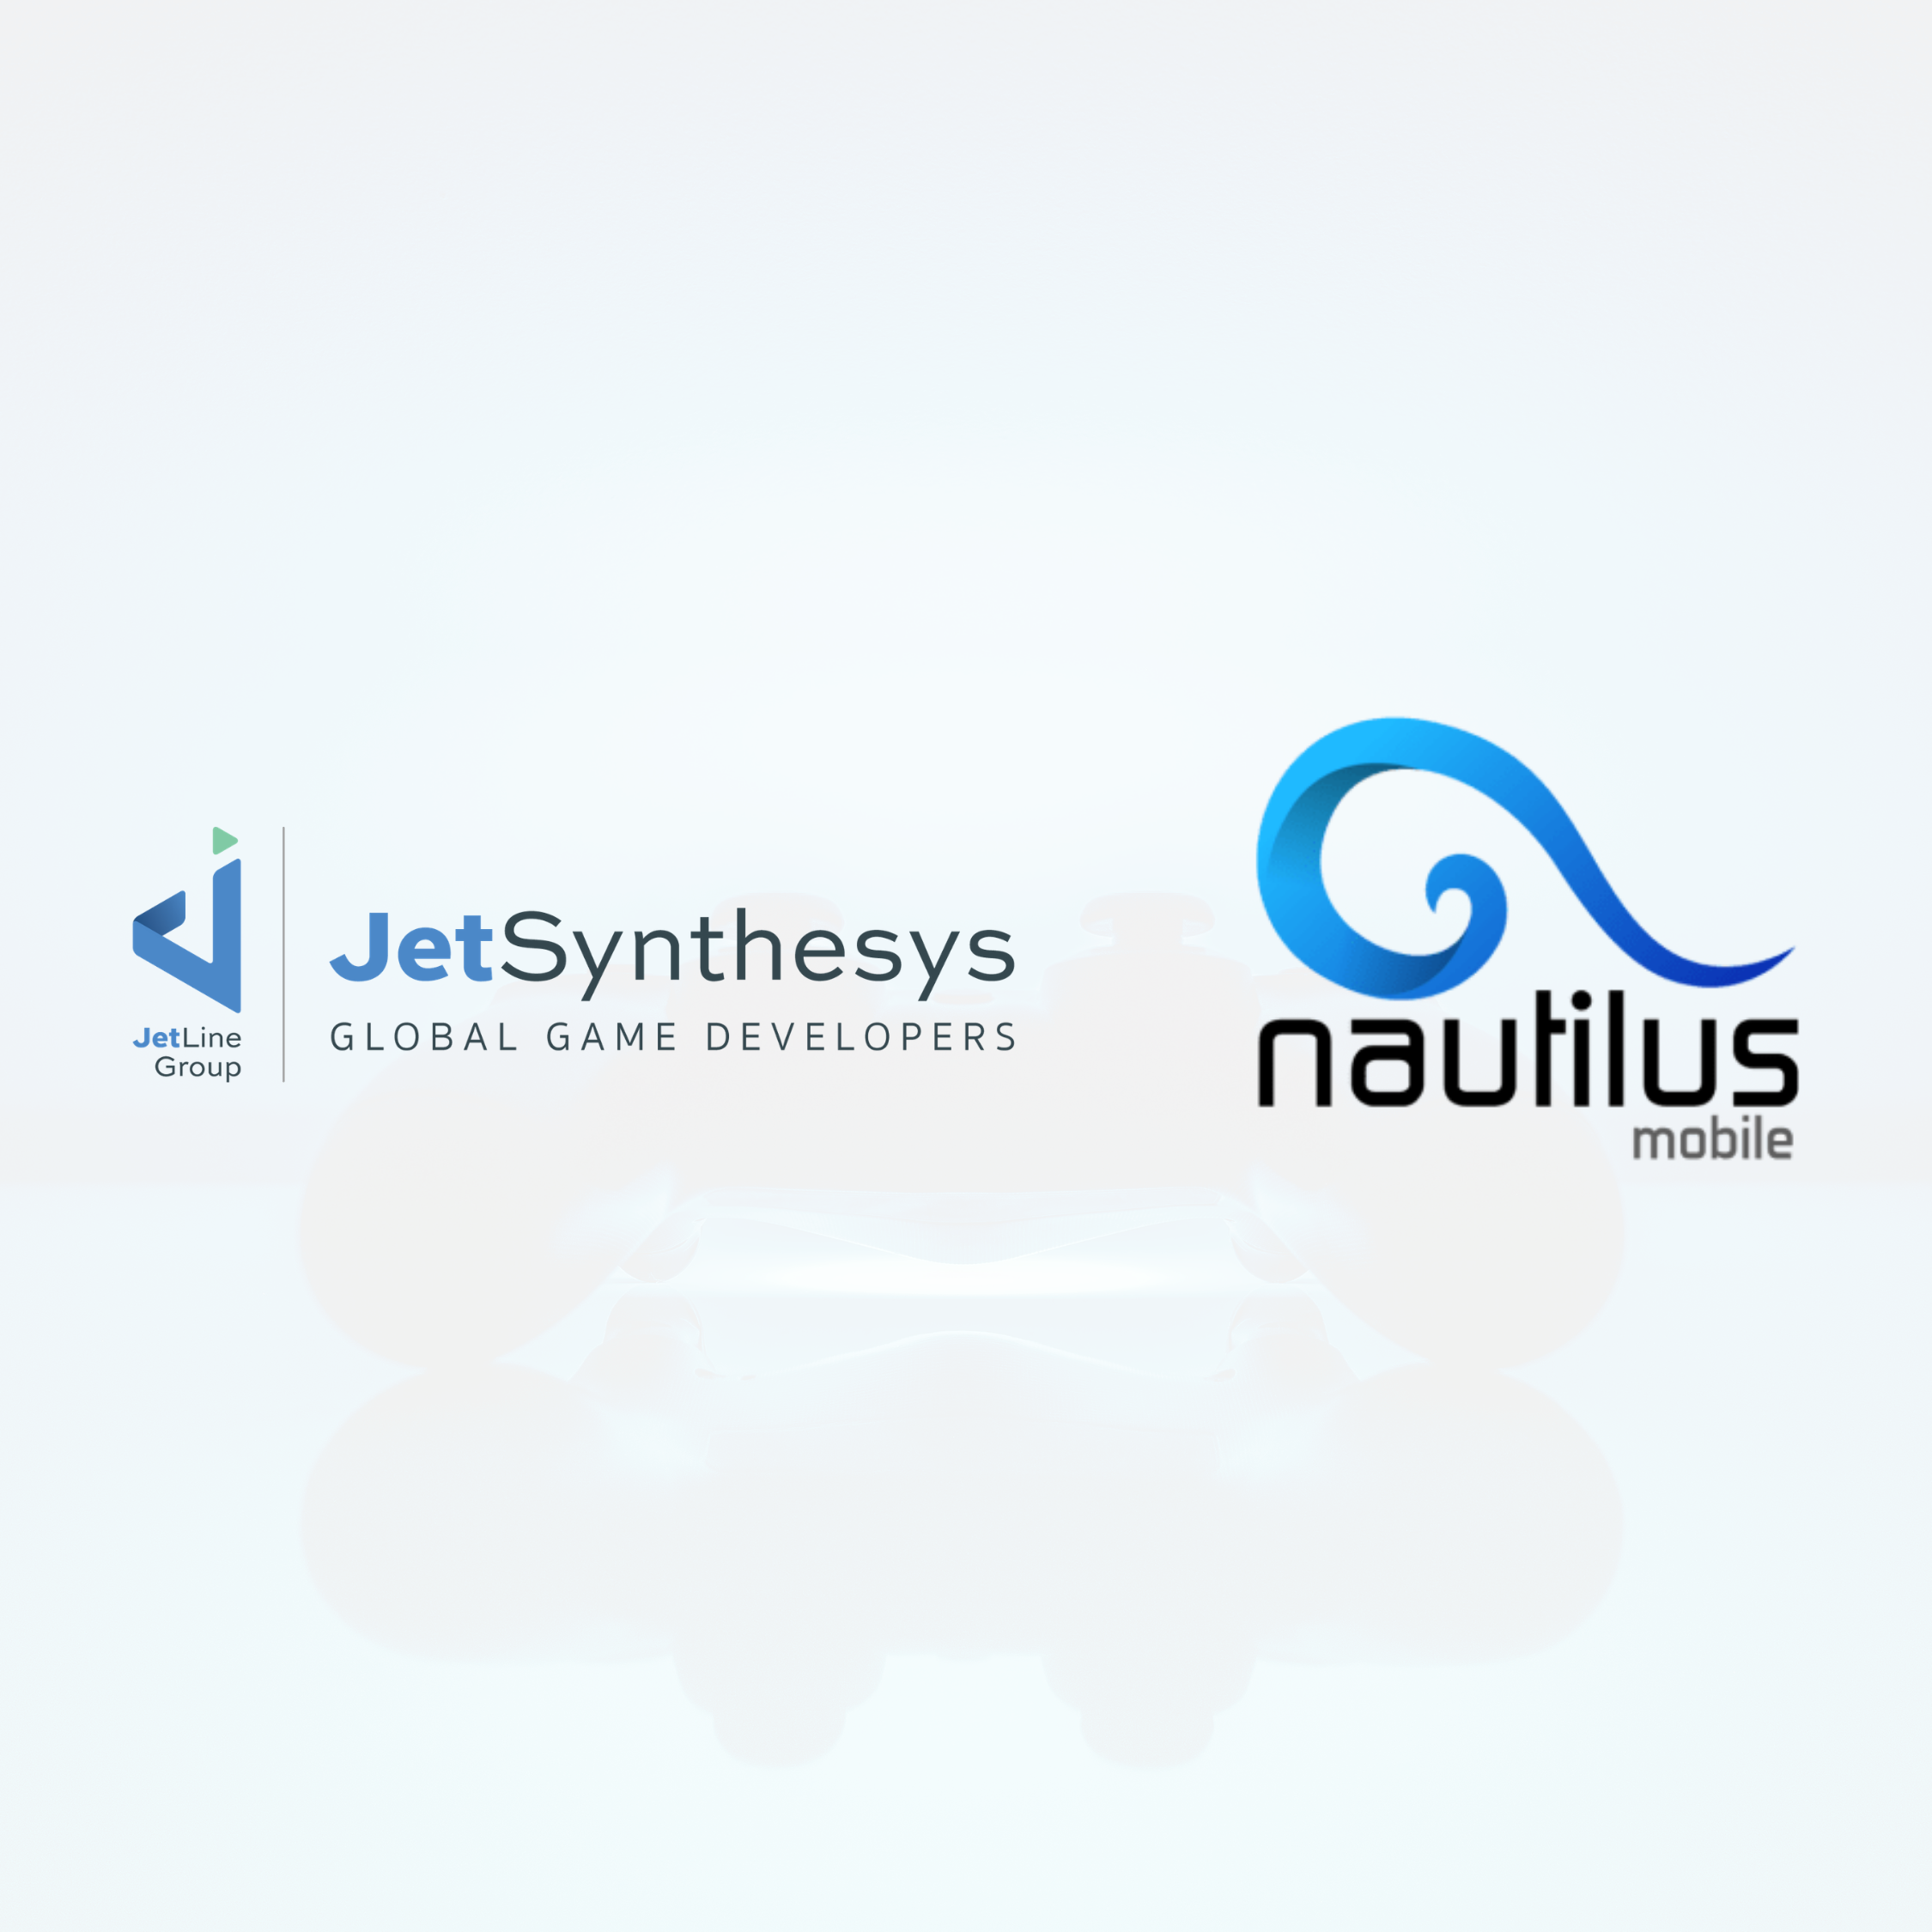 JetSynthesys extends its reach in Mobile Gaming, acquiring Nautilus Mobile